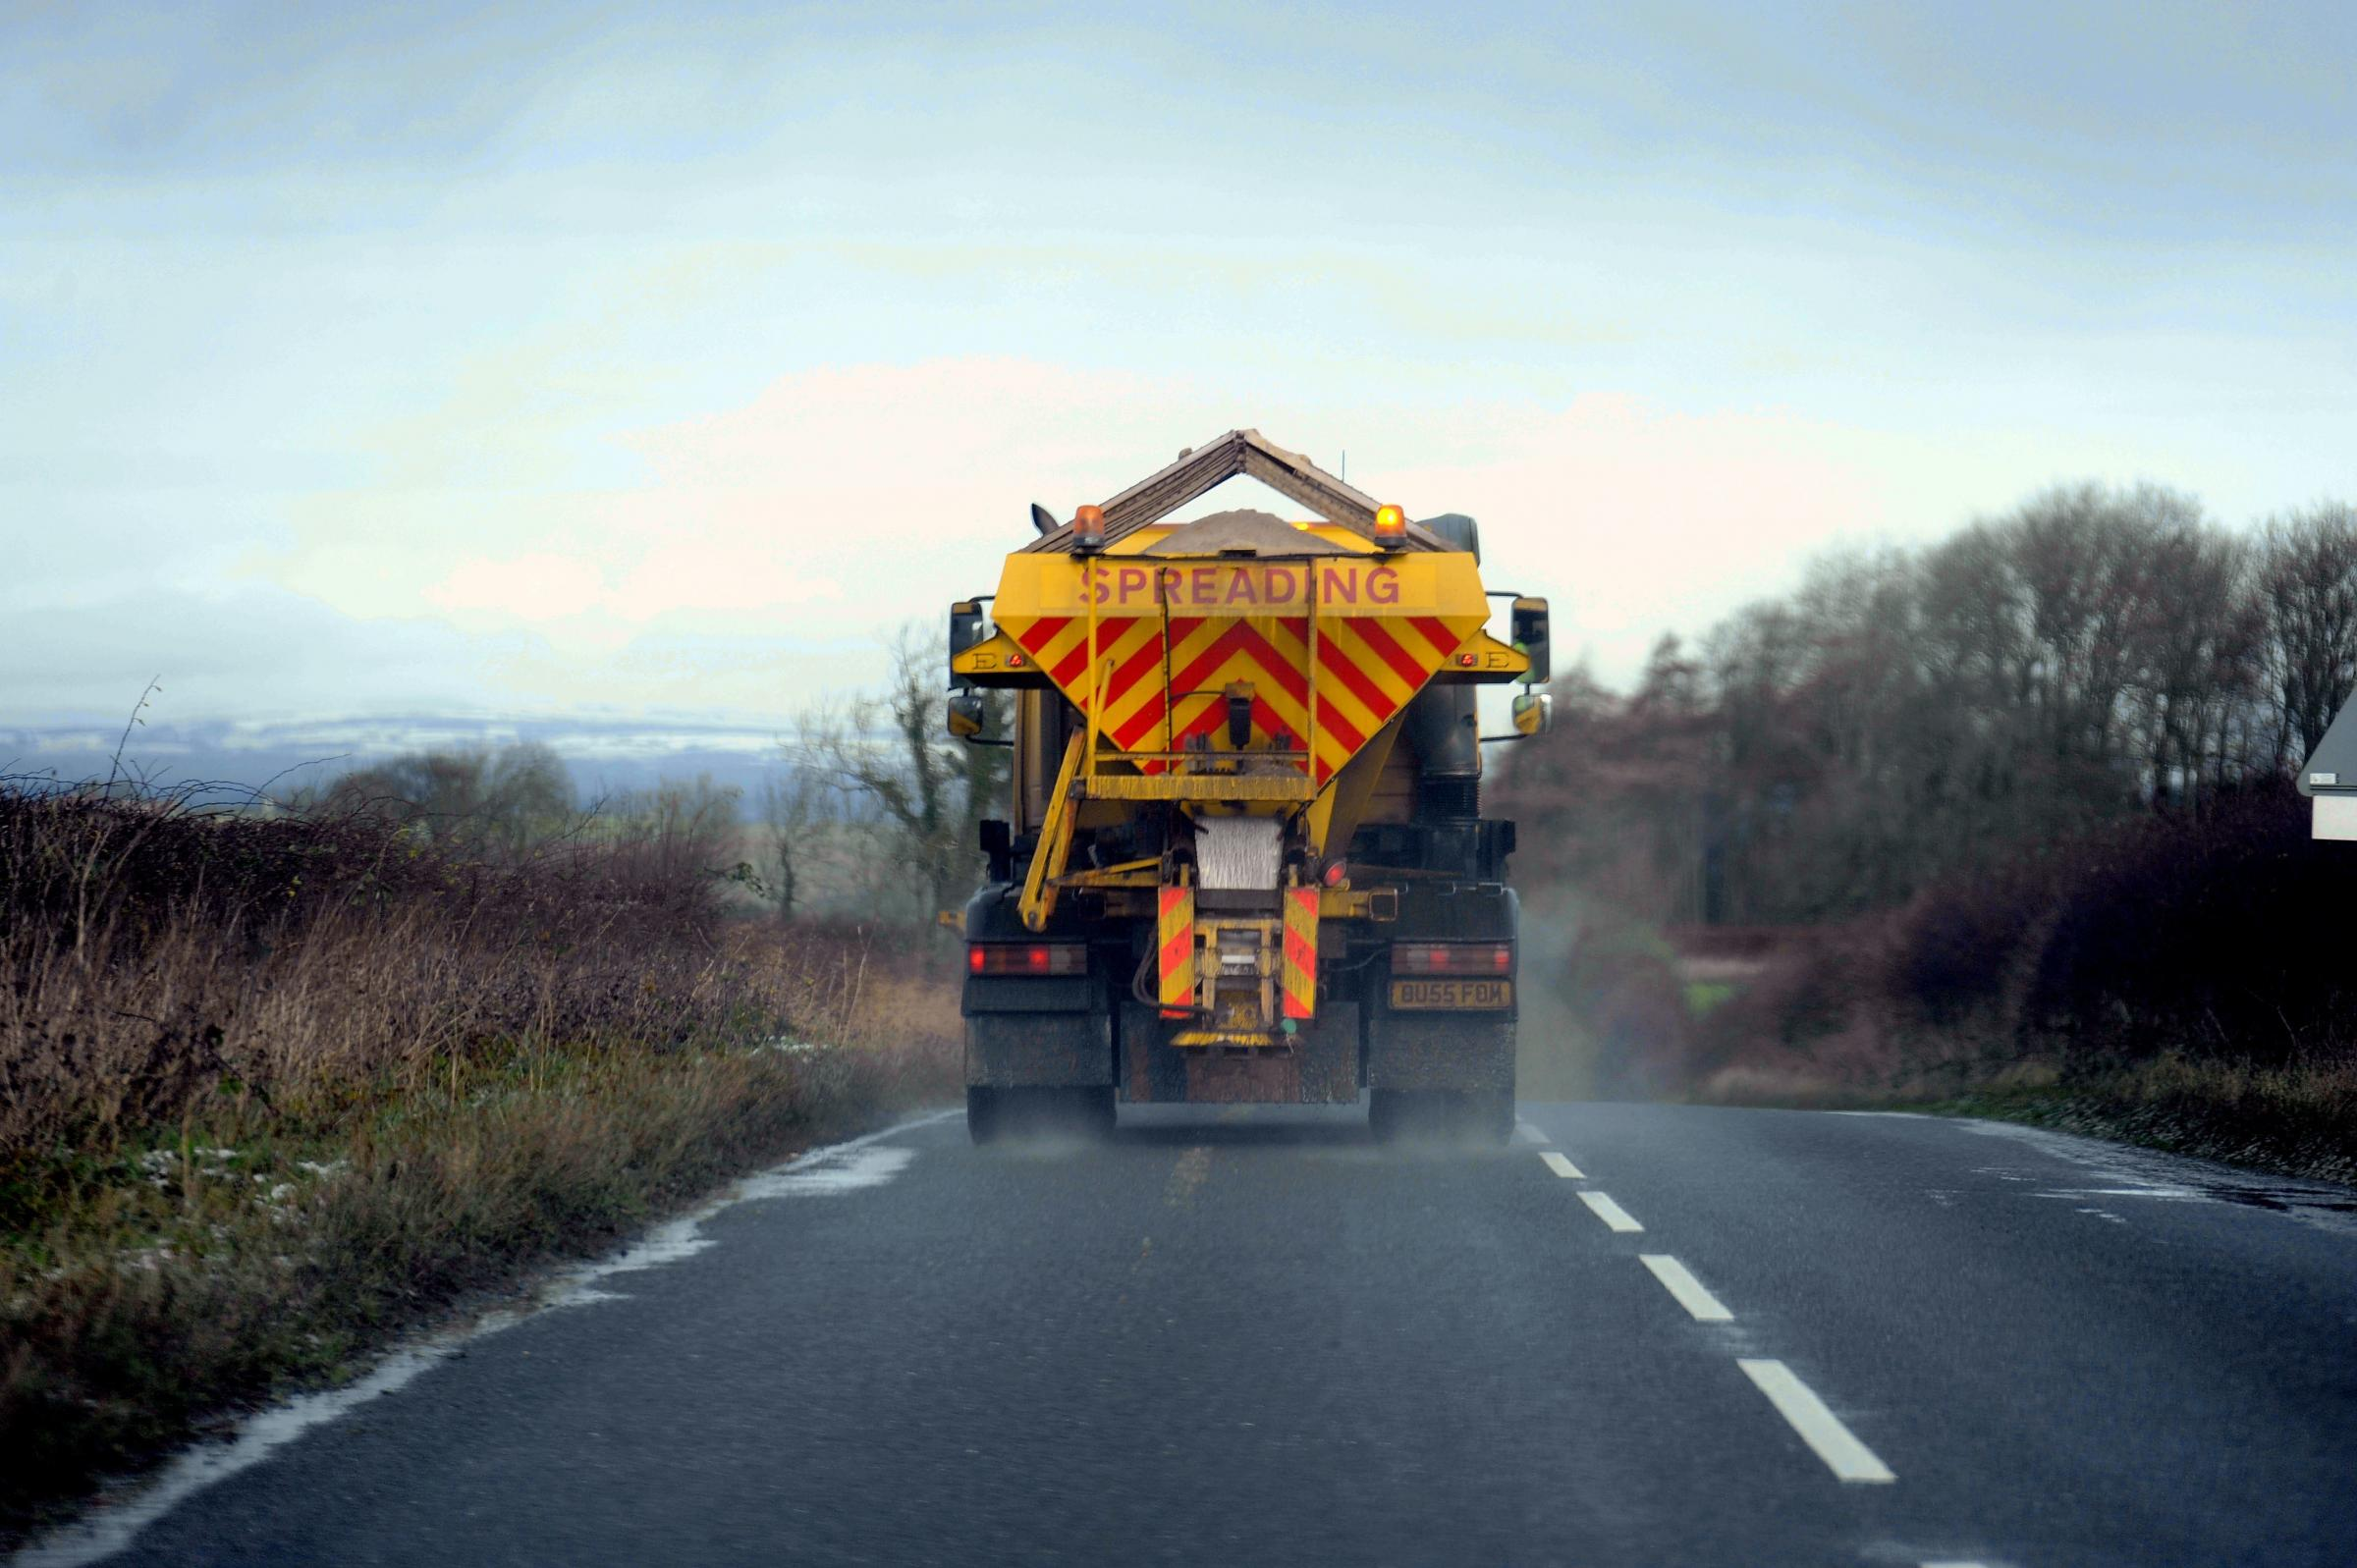 A gritter spreads salt, grit onto the road to prevent ice, black ice. a familiar sight during the winter months when snow and ice disprute the road network: 6 December 2011..                      Pic:STUART WALKER 50027506F000